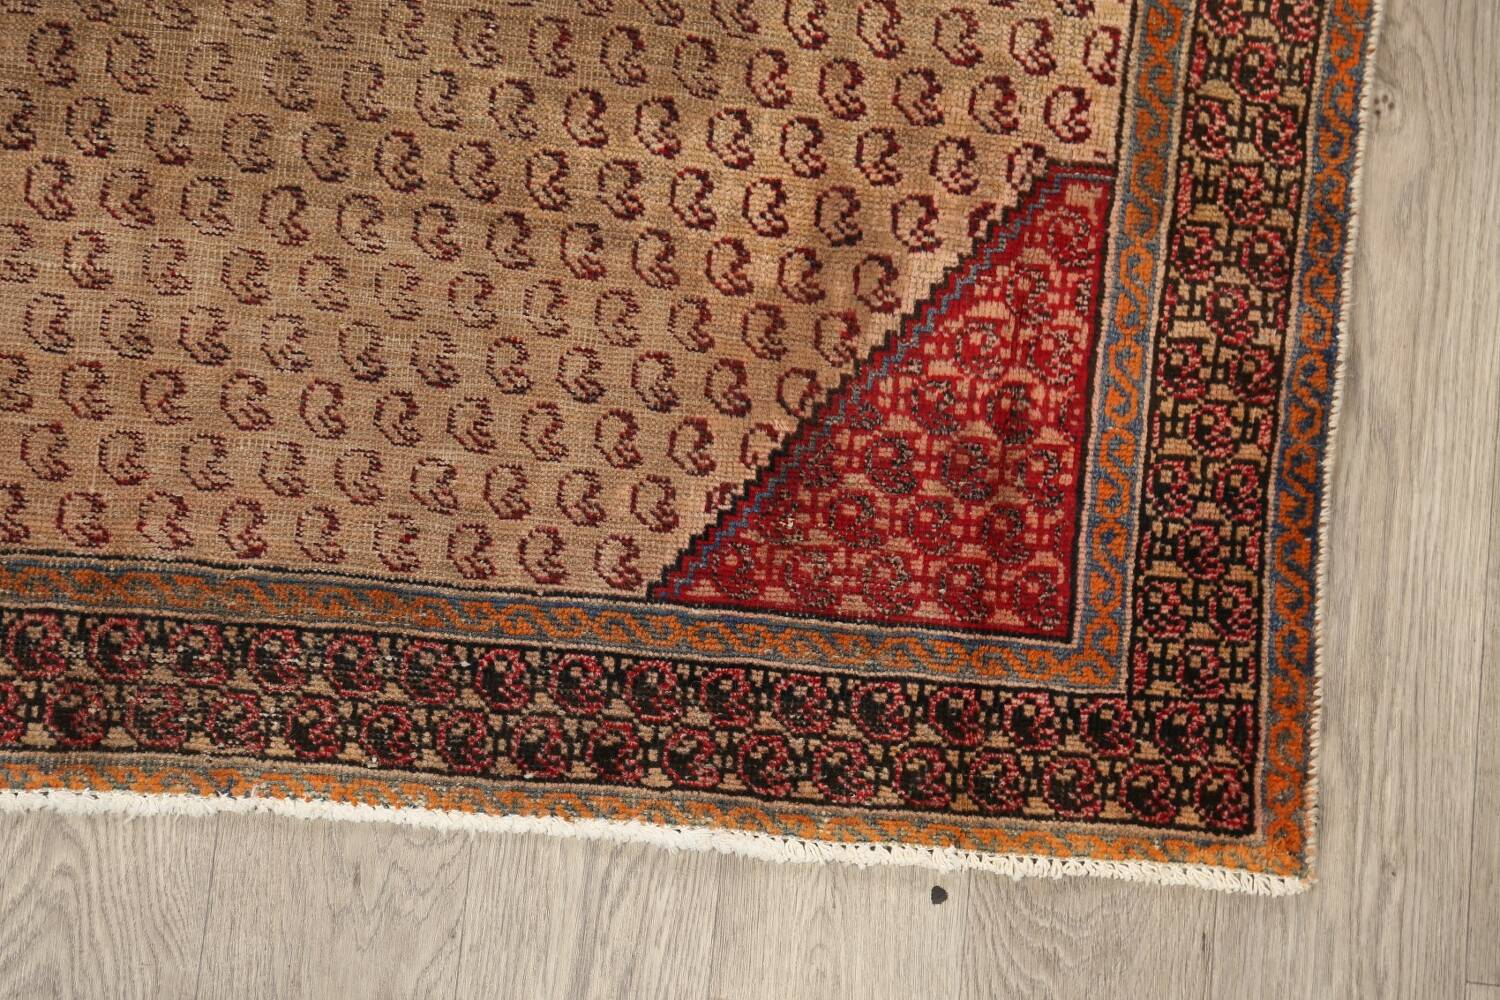 Antique Boteh Botemir Persian Area Rug 4x6 image 5